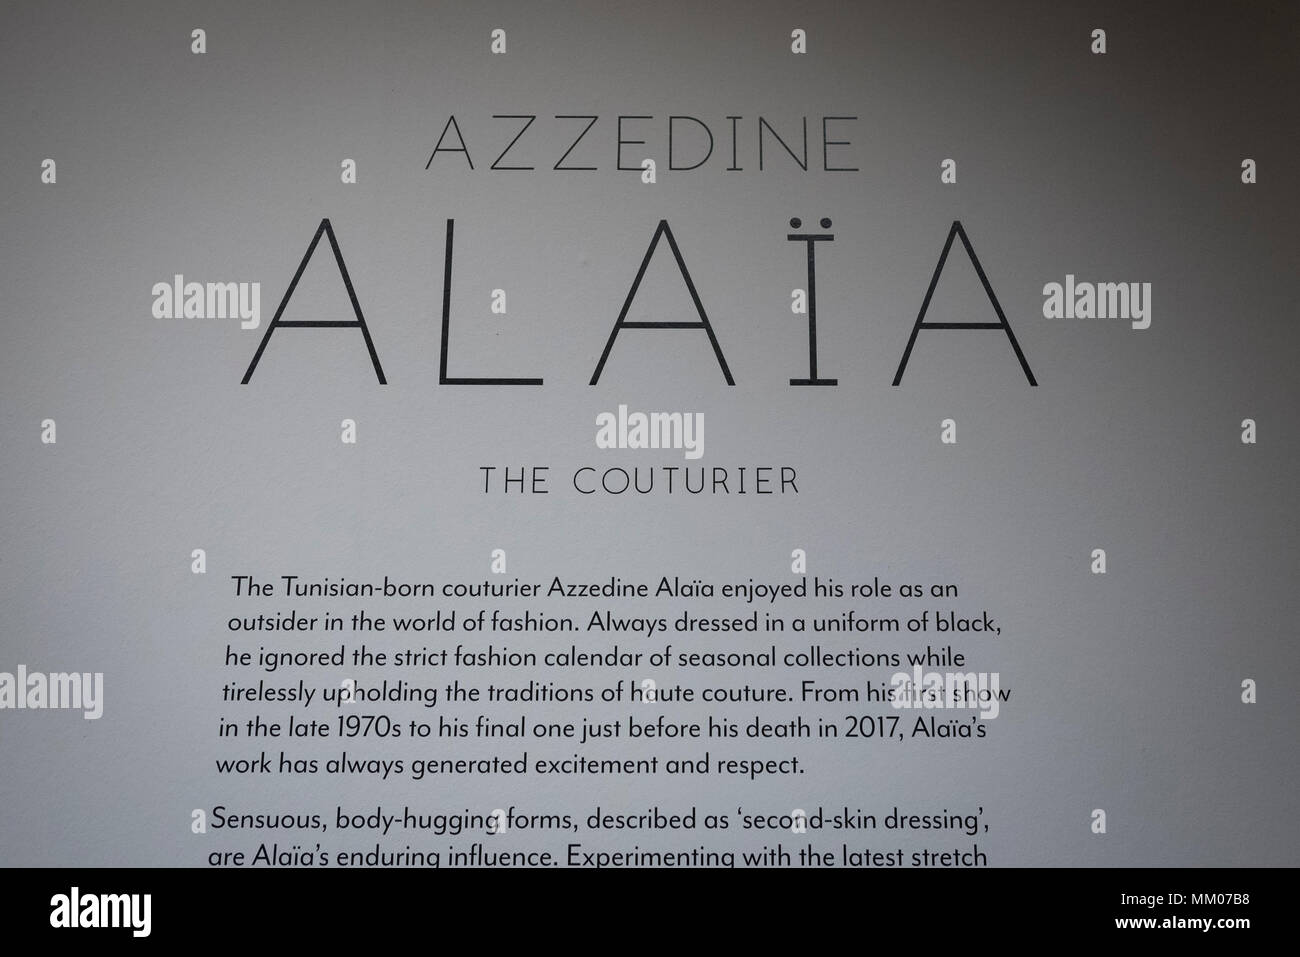 London, UK.  9 May 2018.  Preview of 'Azzedine Alaïa:  The Couturier', the first UK exhibition of Azzedine Alaïa examining the work of one of the most respected fashion designers in history.  Over 60 rare and iconic garments are on display alongside a series of specially commissioned pieces.  The exhibition runs 10 May to 7 October 2018 at the Design Museum.   Credit: Stephen Chung / Alamy Live News - Stock Image